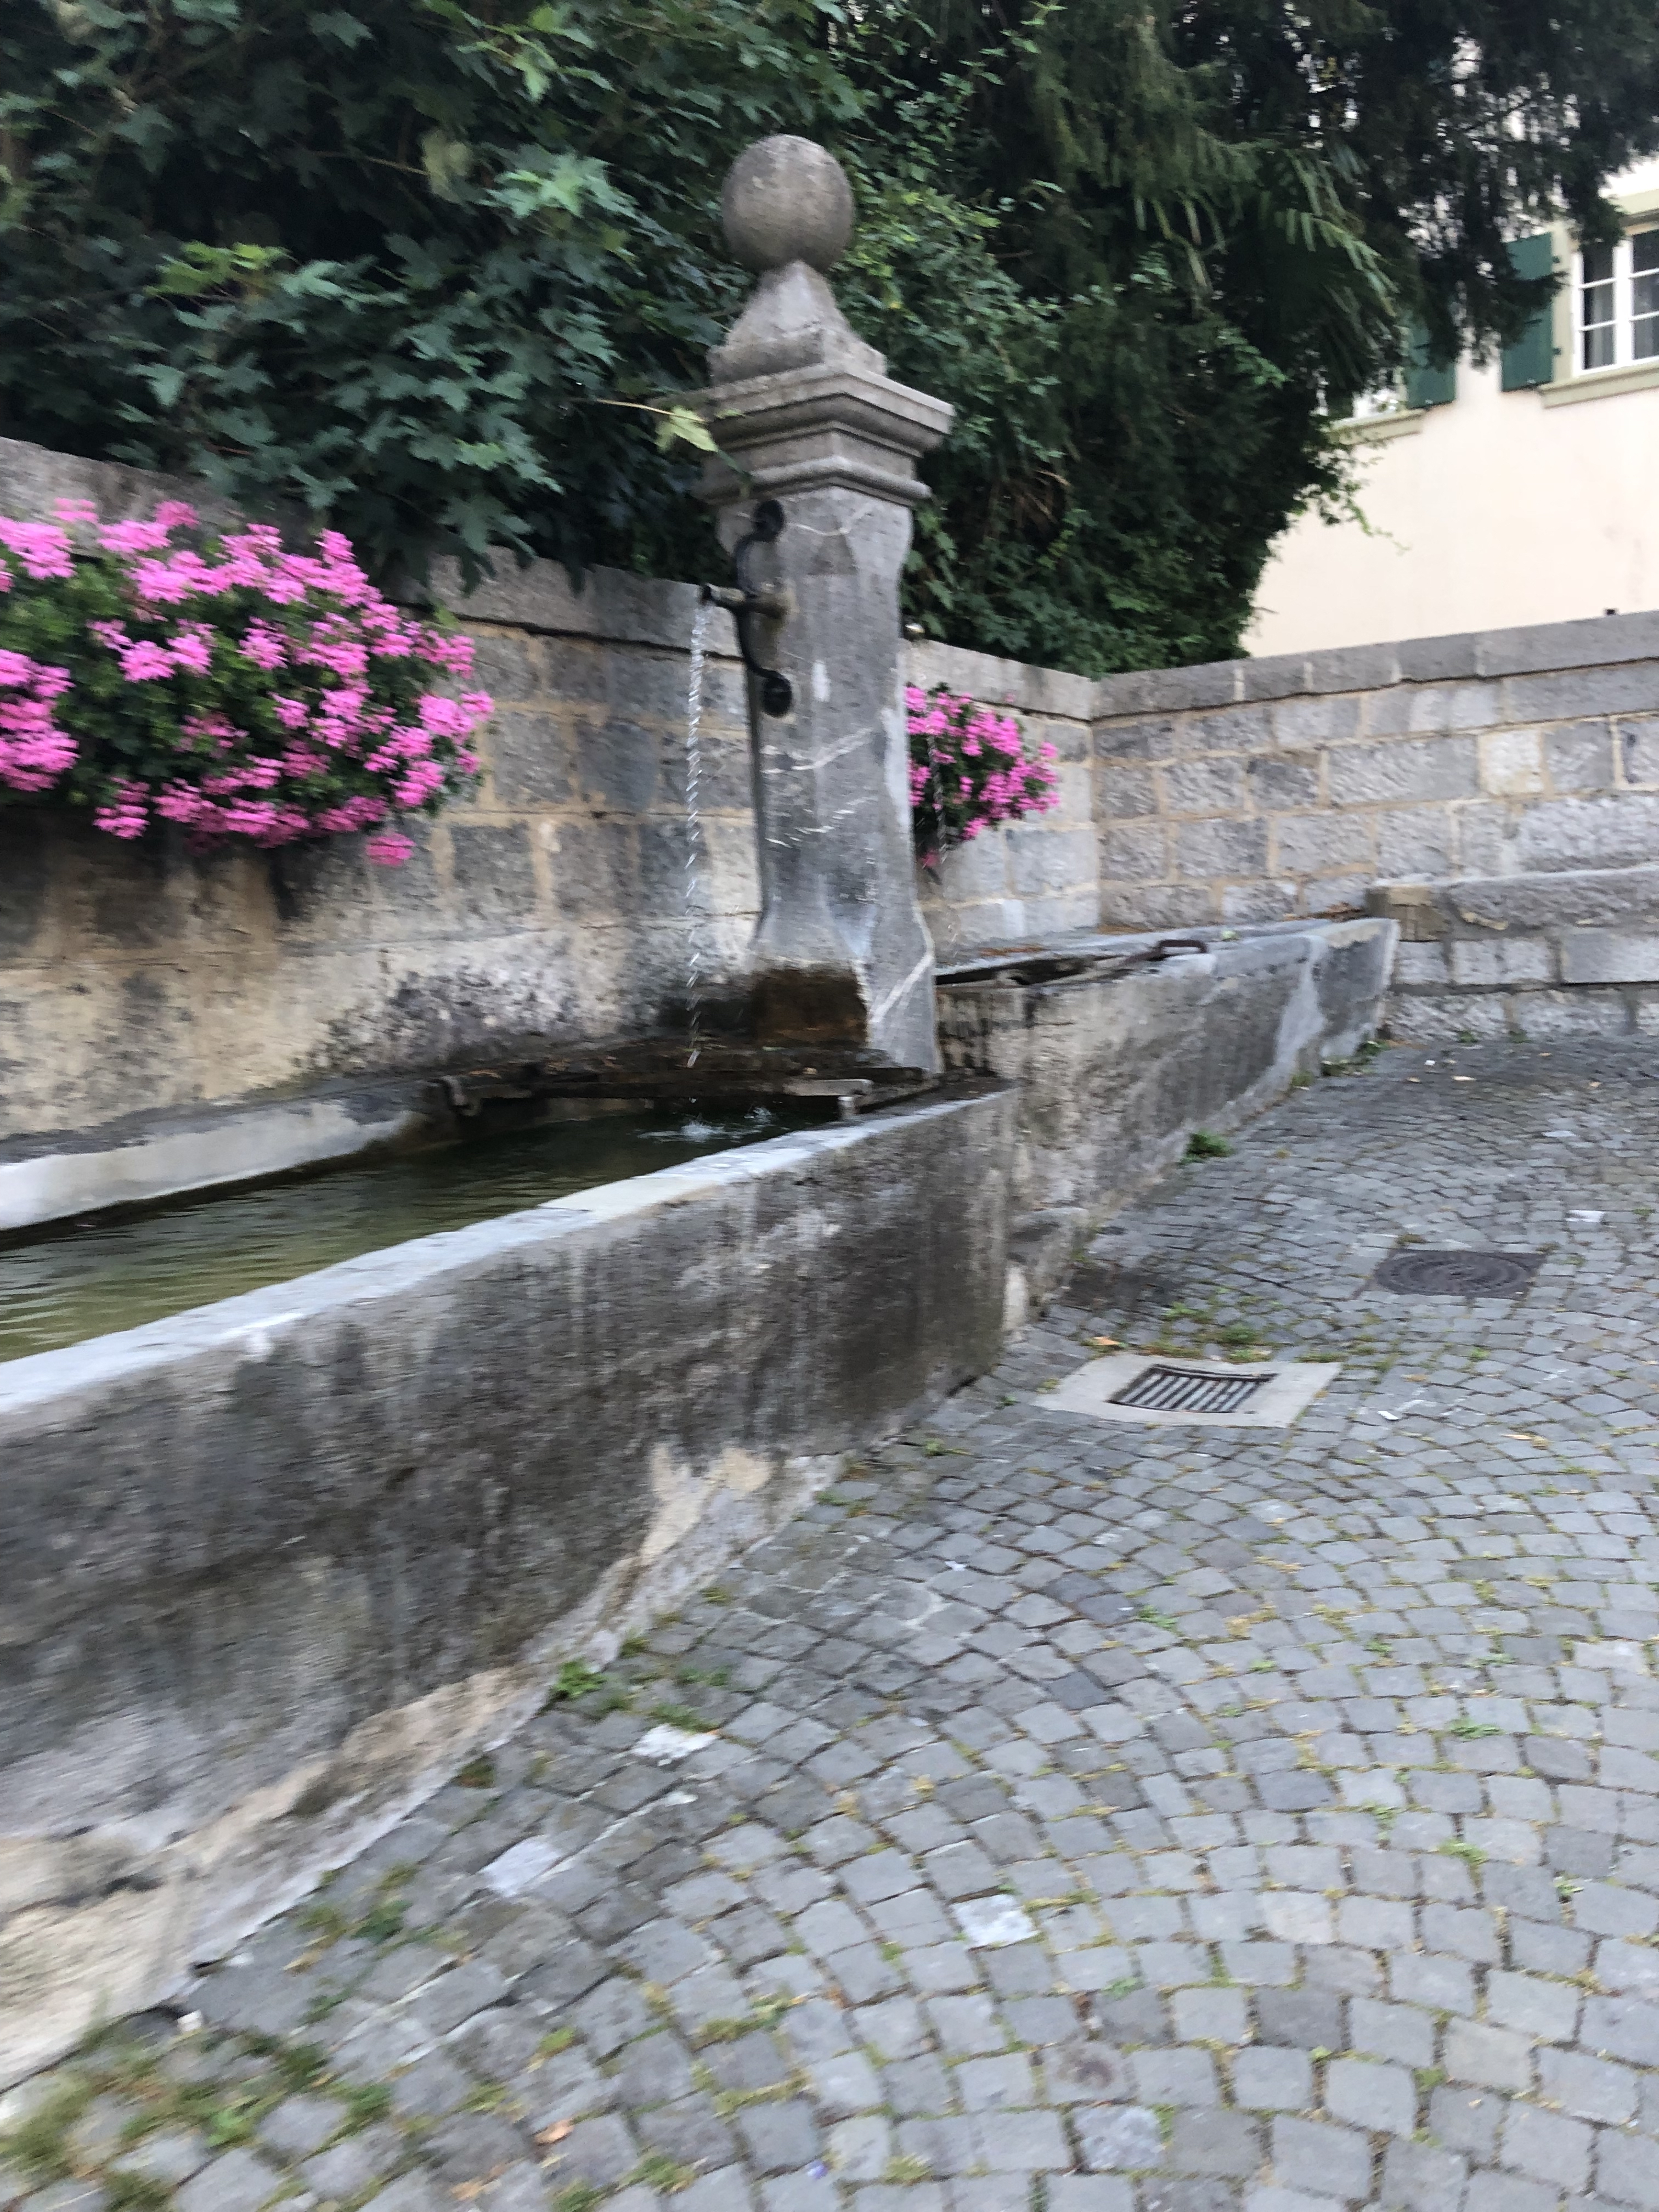 A public outdoor fountain for drinking water with two bunches of pink flowers